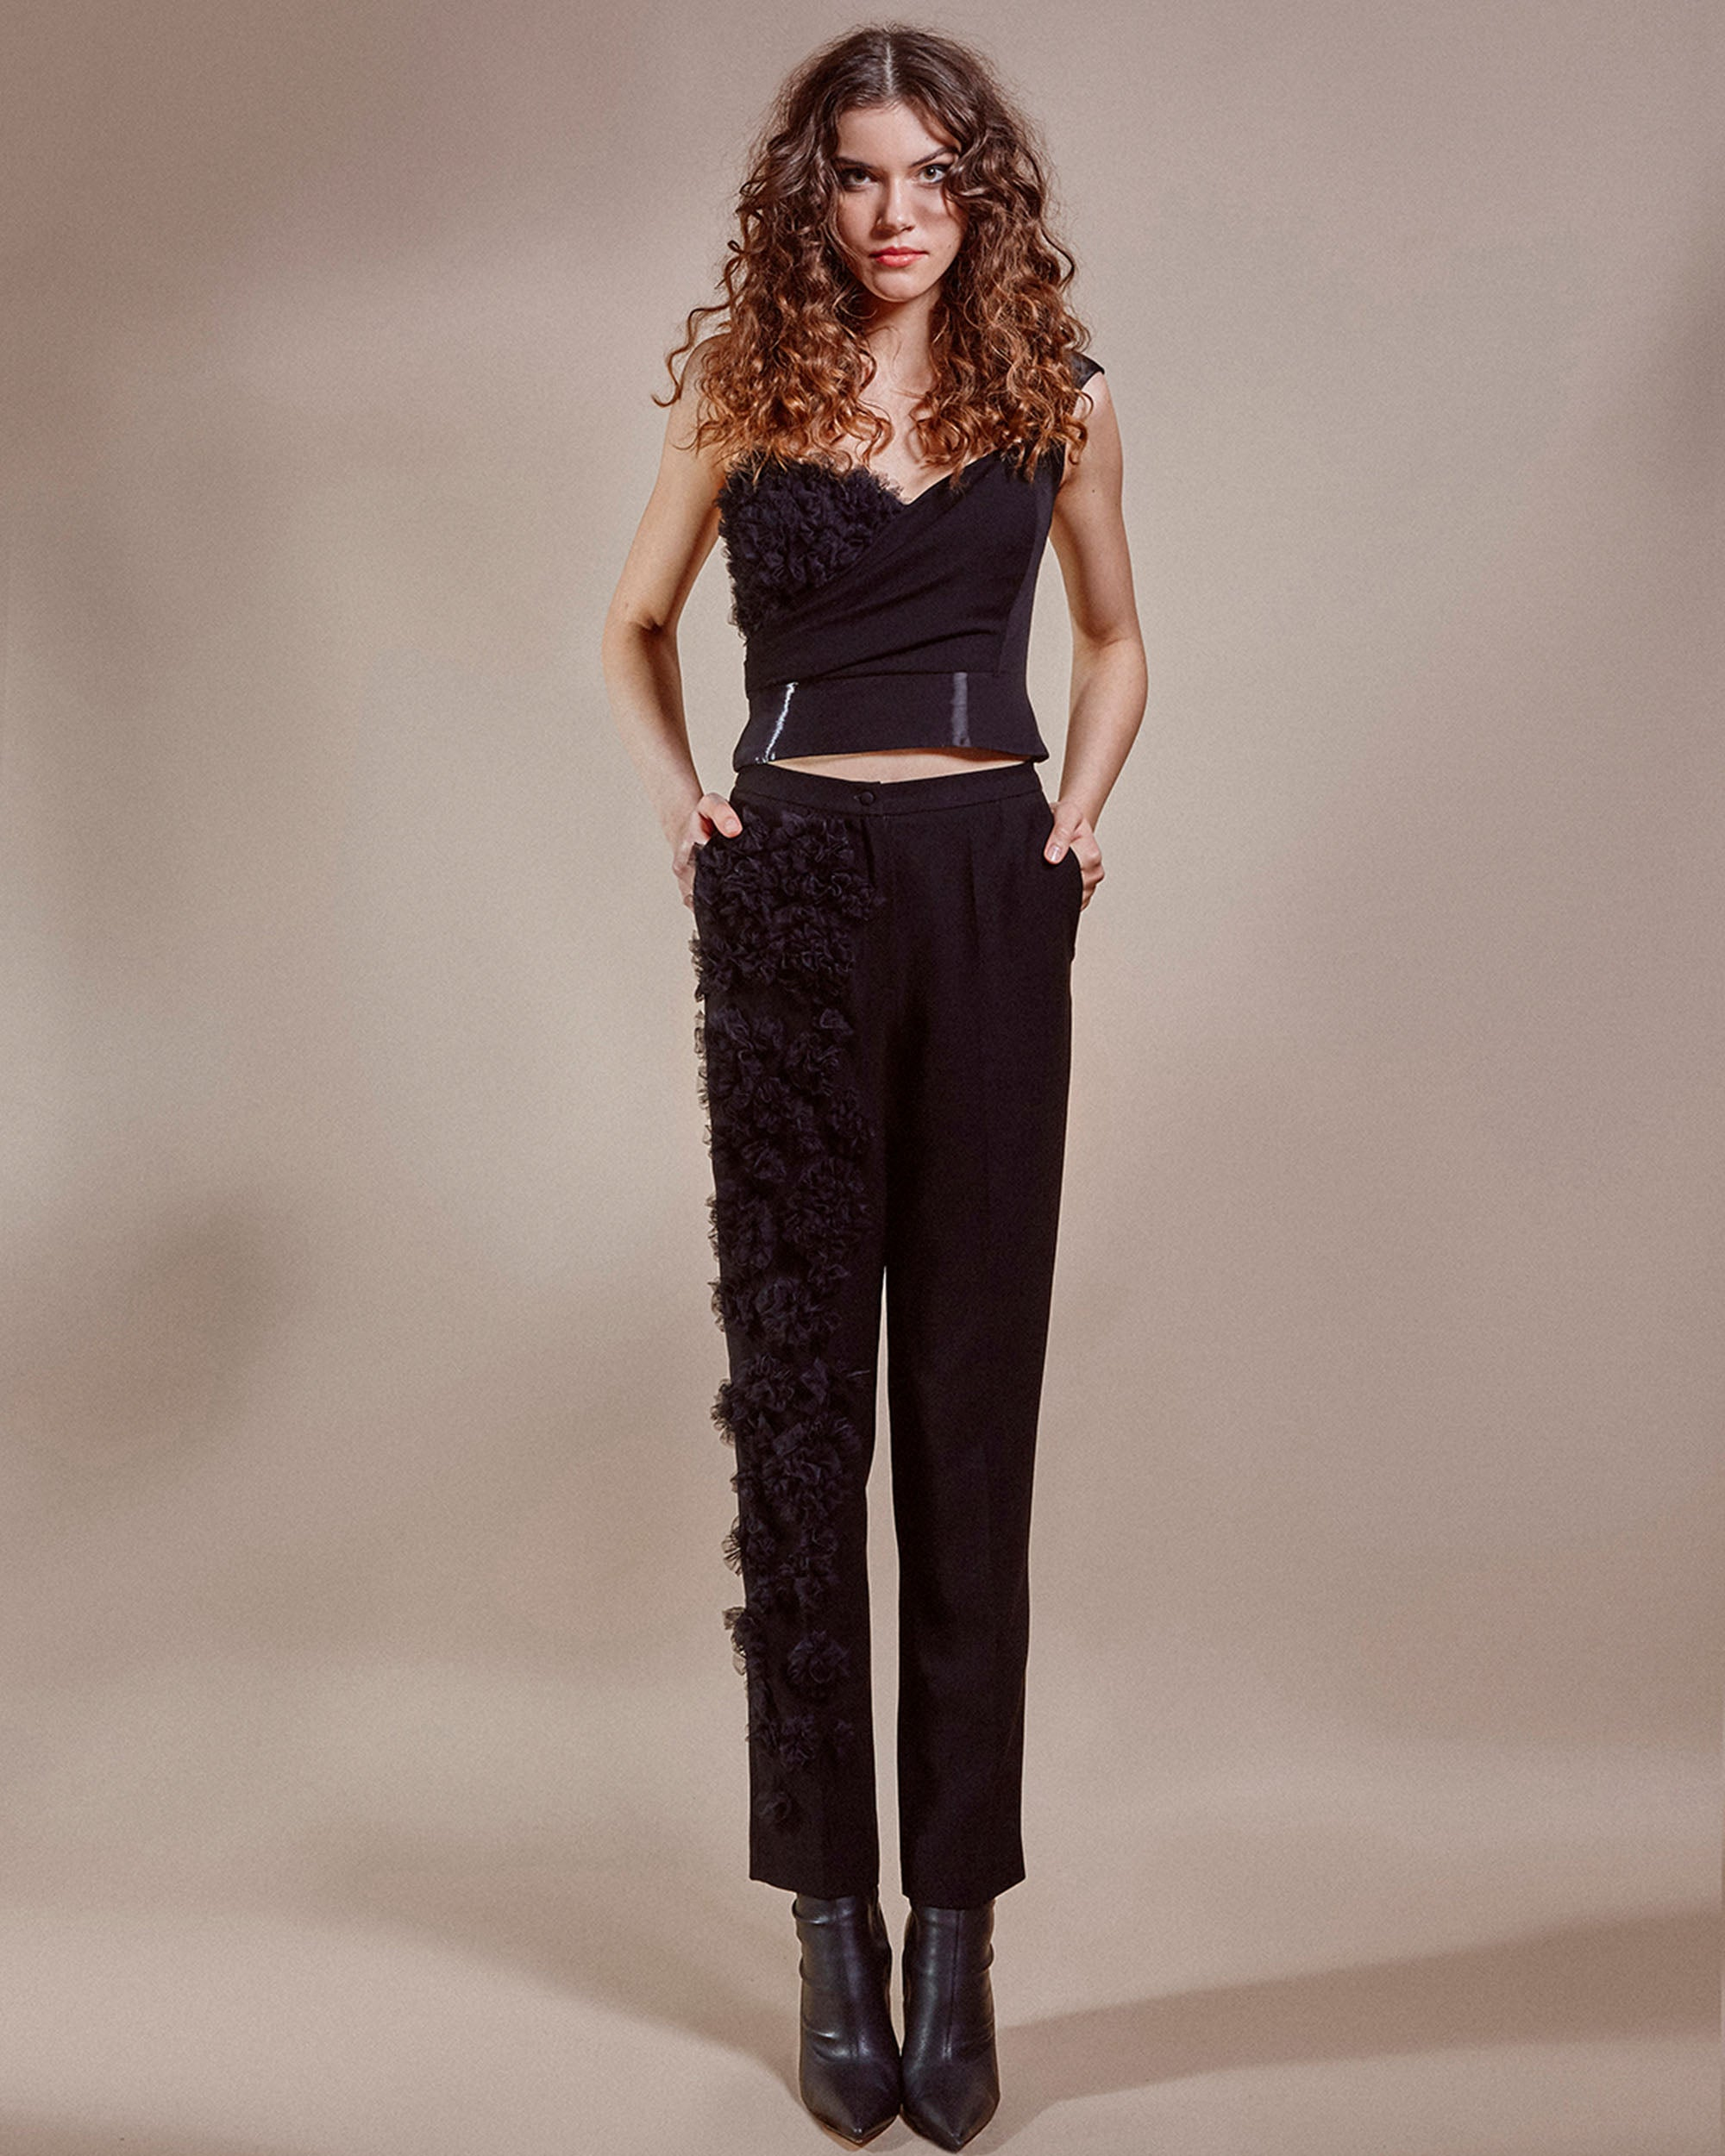 Ruffled Detail Pants